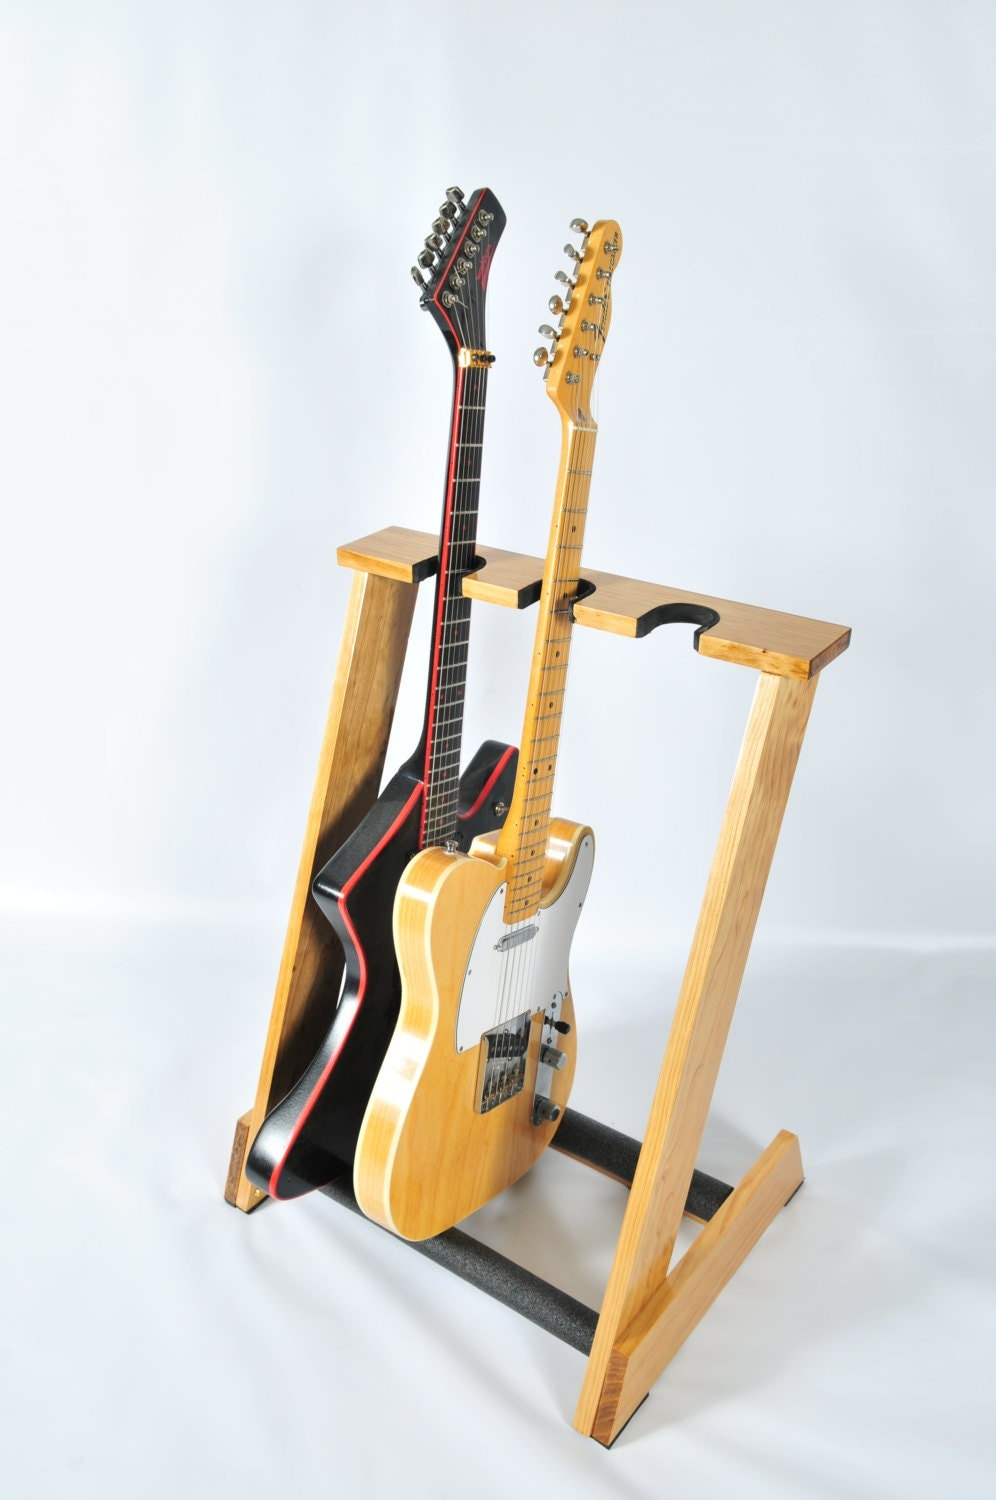 Guitar Stand Designs : Handcrafted wooden guitar stand from allwood stands display